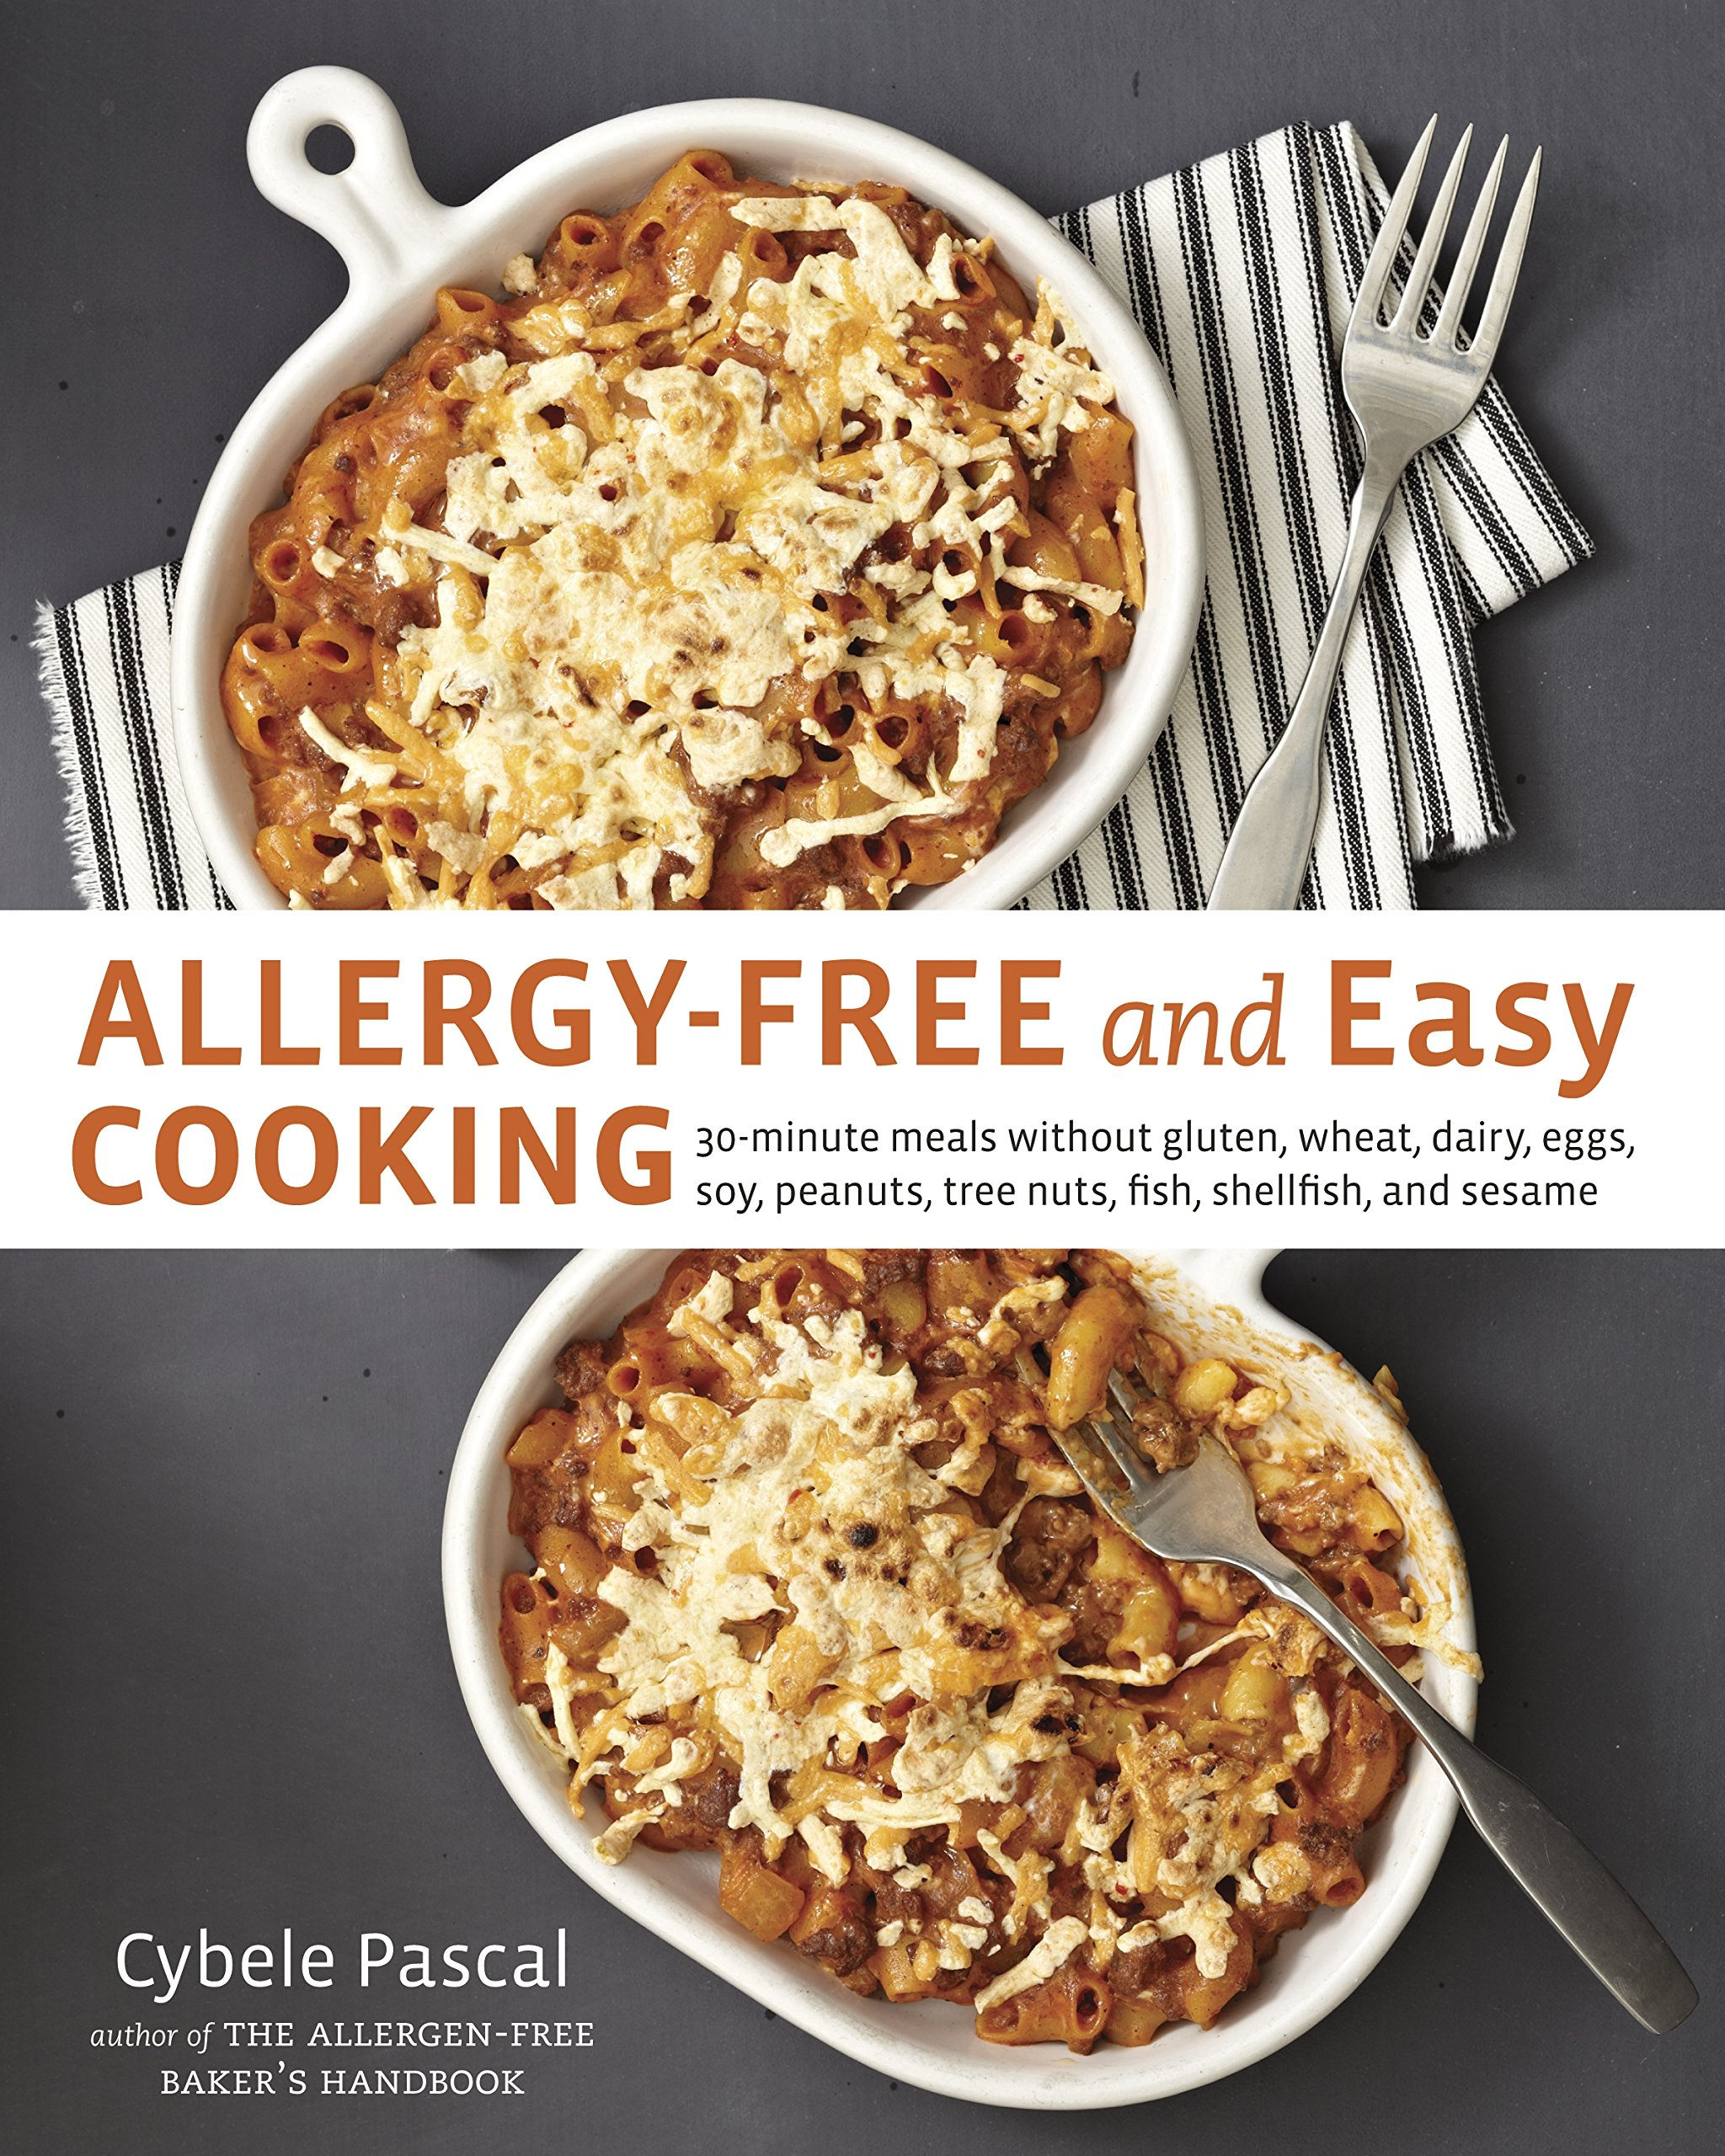 Allergy Free And Easy Cooking 30 Minute Meals Without Gluten Wheat Dairy Eggs Soy Peanuts Tree Nuts Fish Shellfish Sesame Cybele Pascal